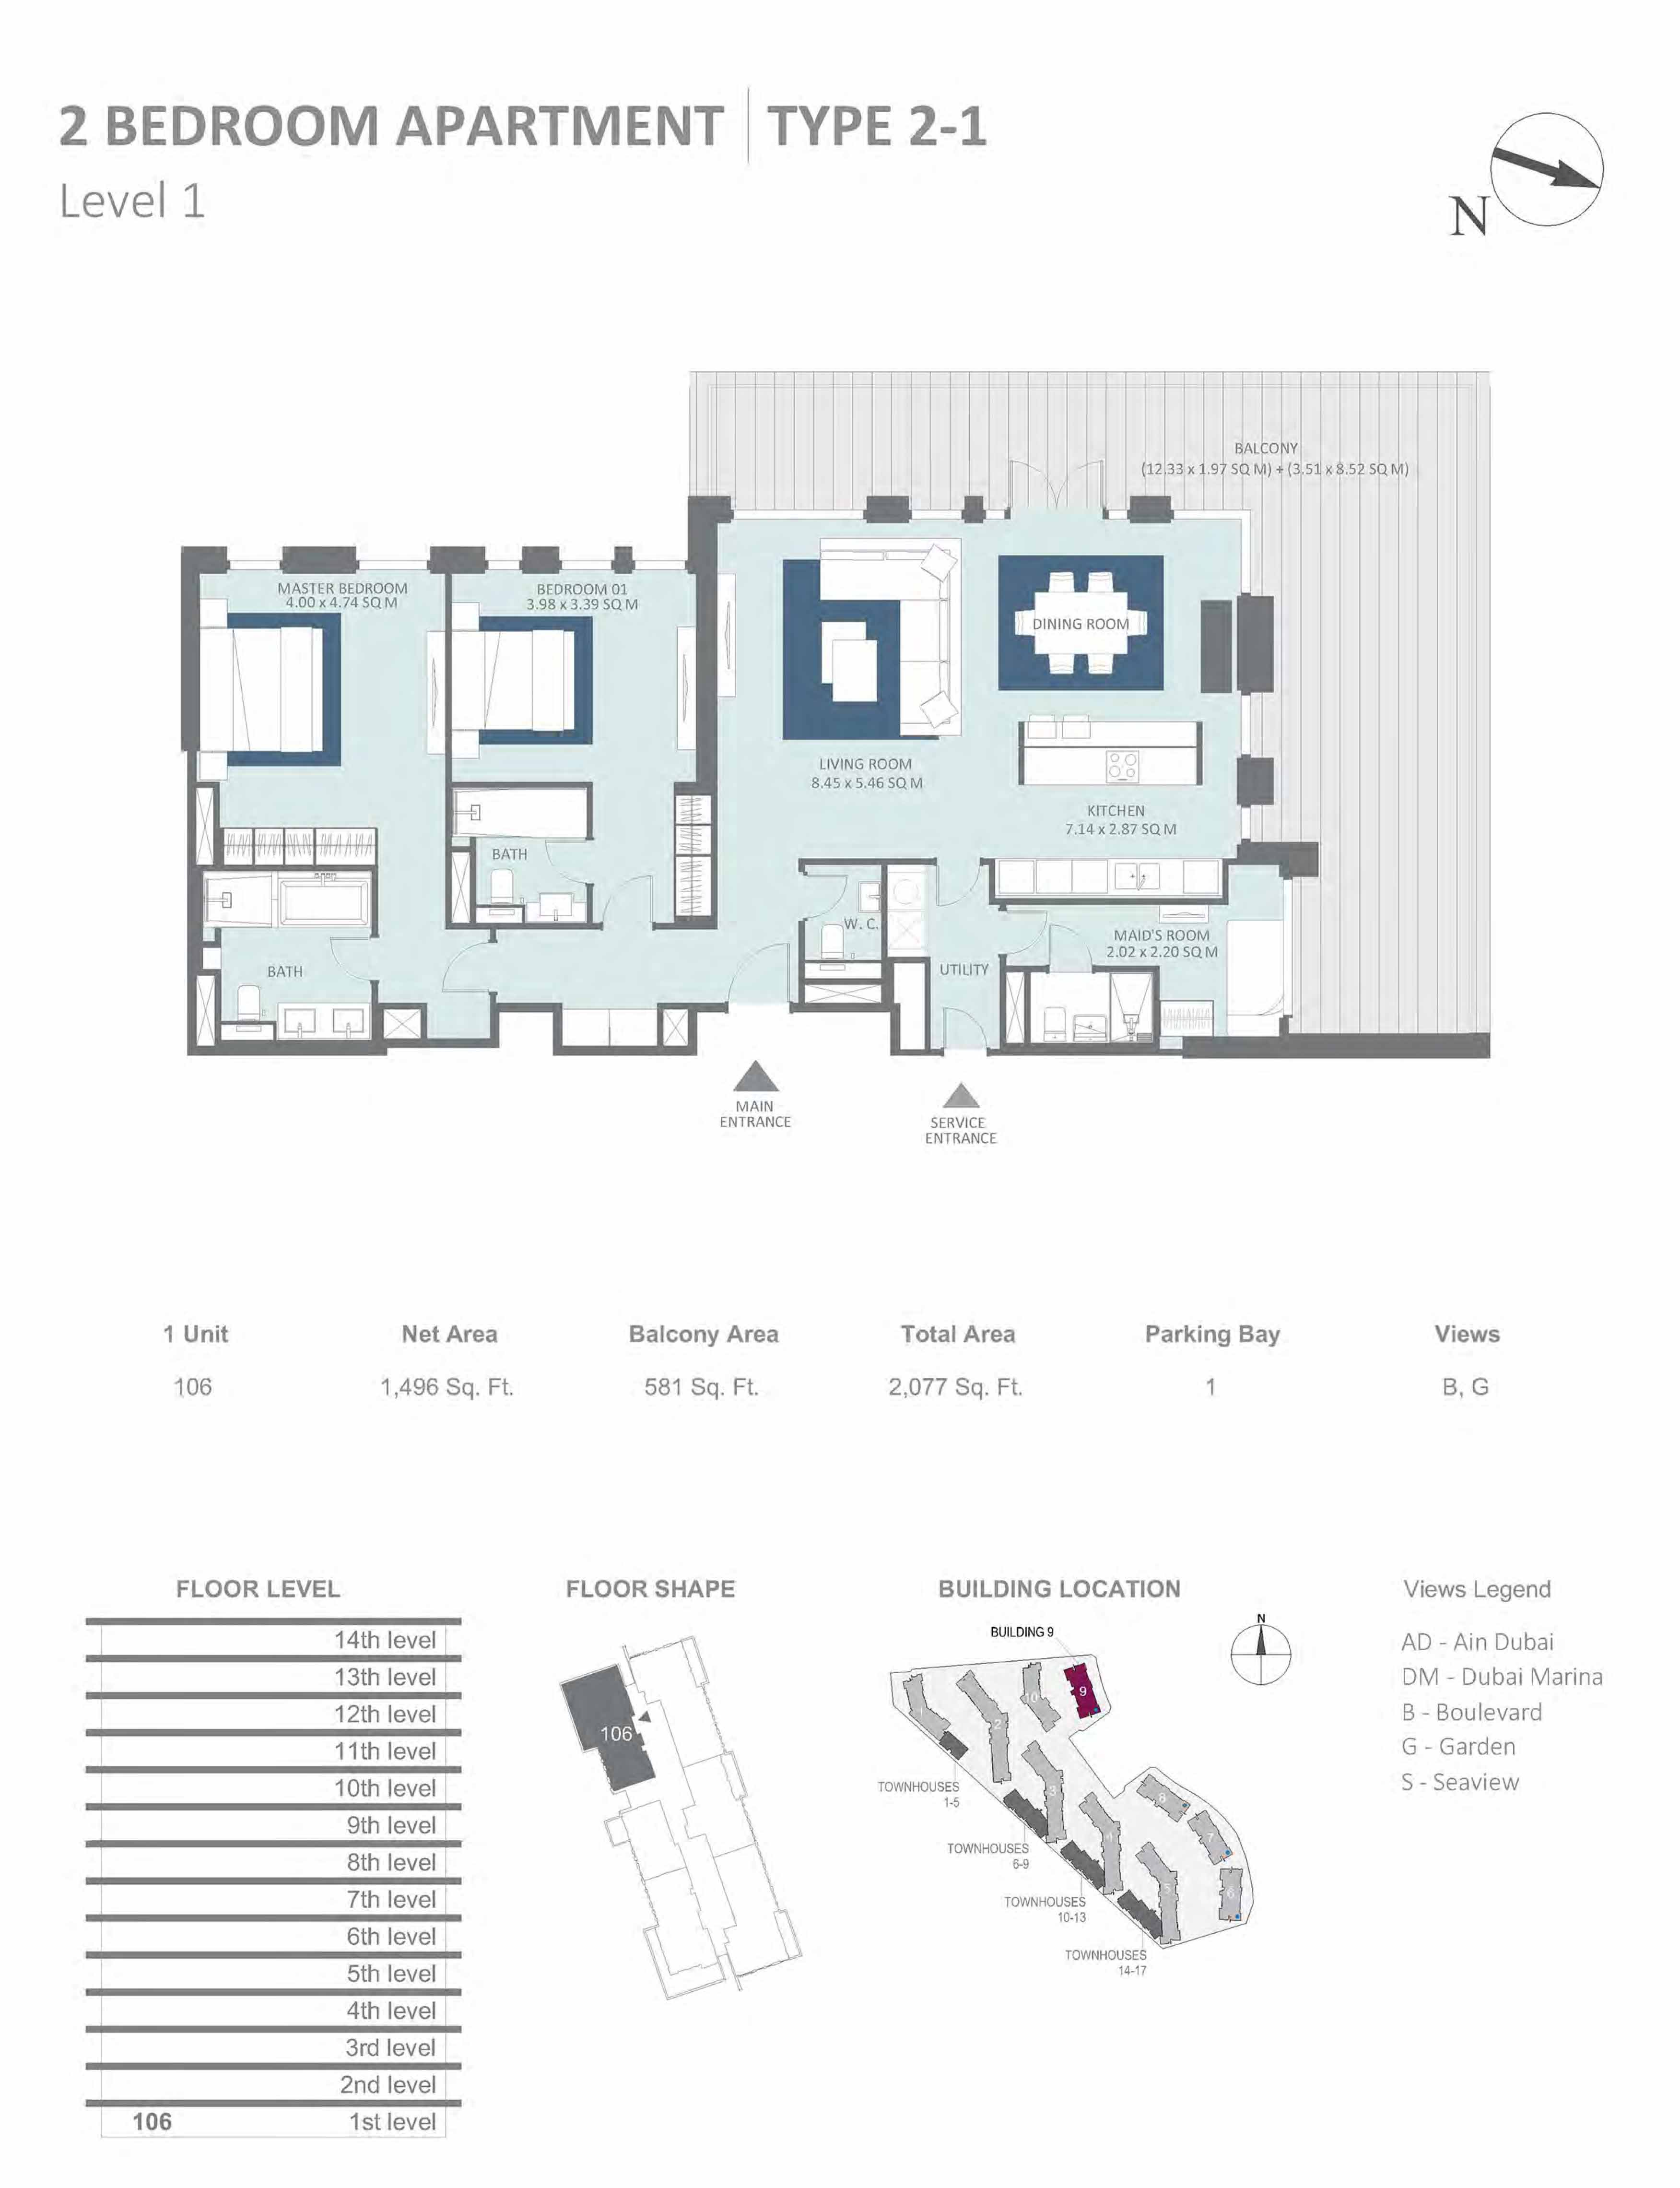 Building 9 - 2 Bedroom Type 2-1, Level 1 Size 2077  sq. ft.